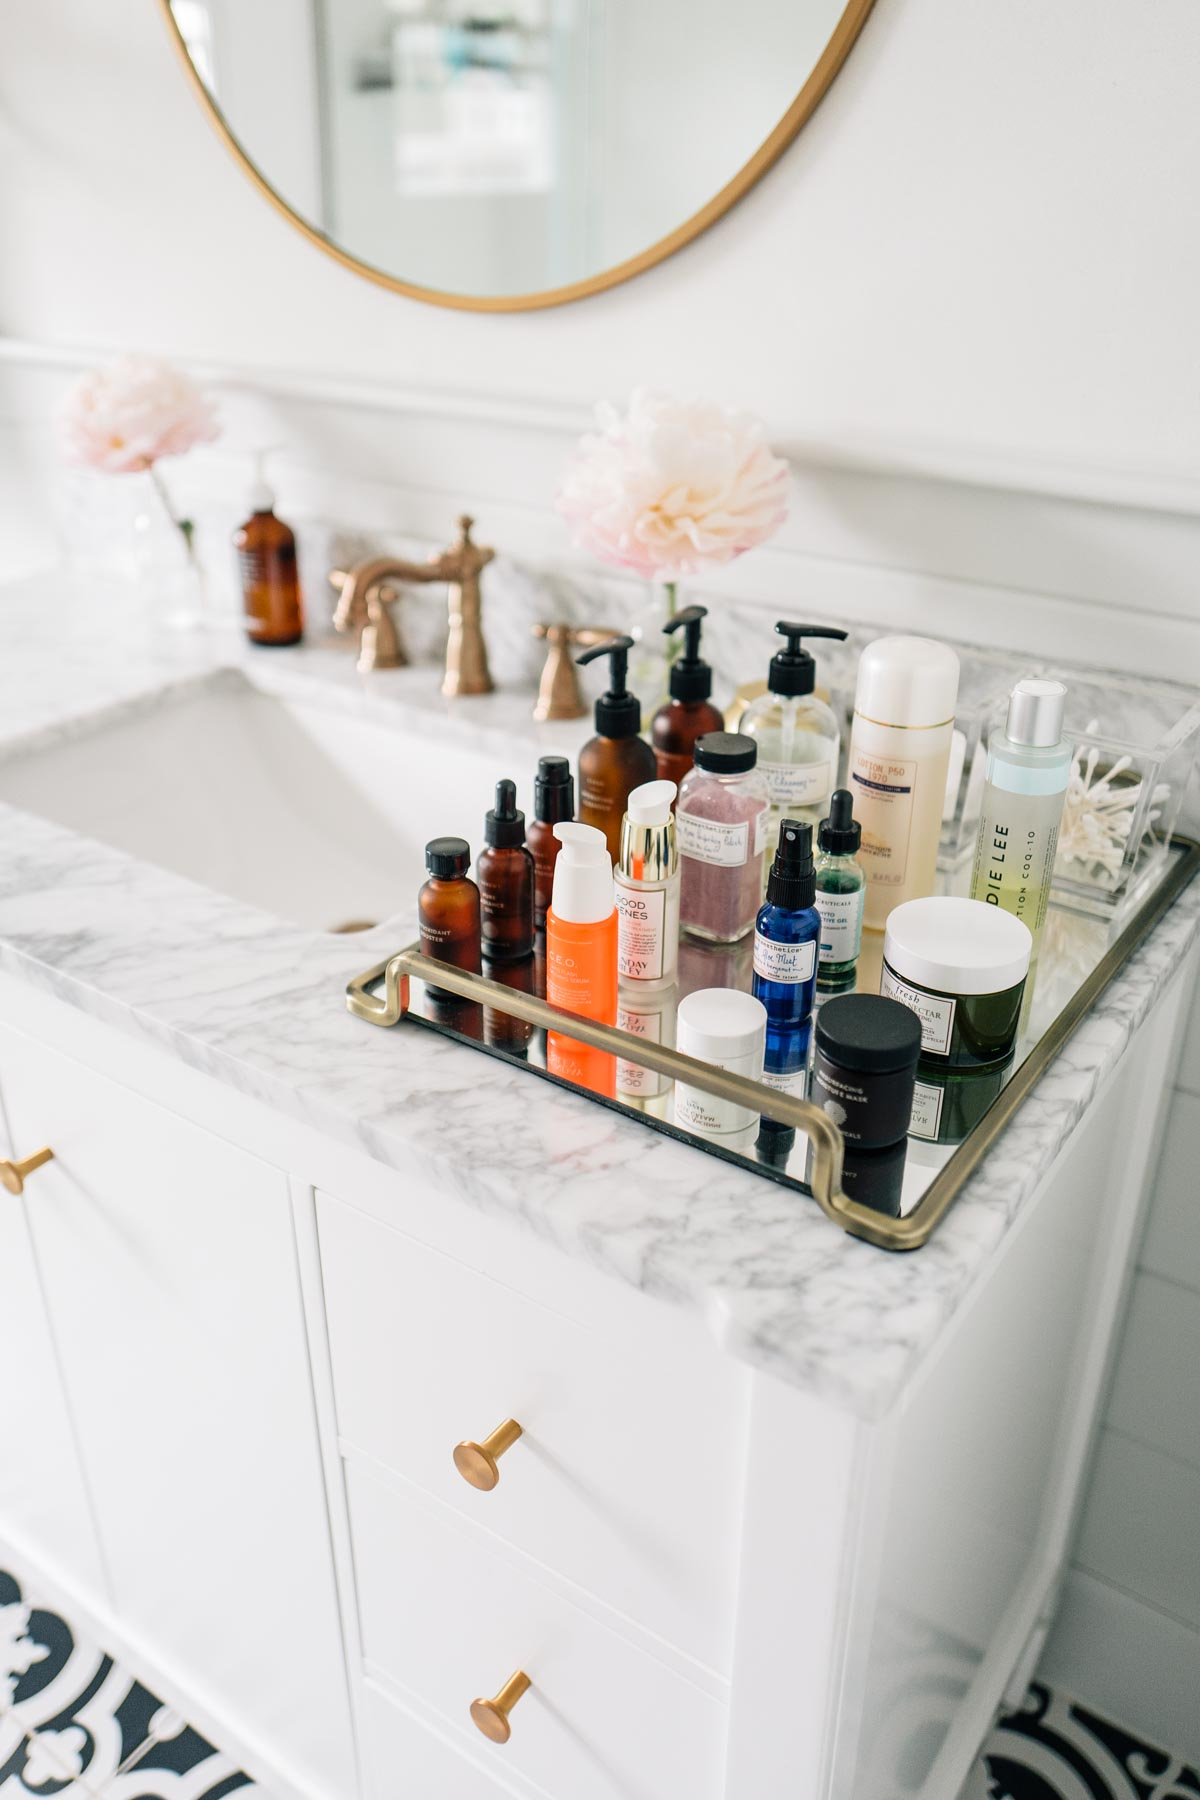 Jess Ann Kirby shares her hormonal acne skincare routine and holistic approach to beauty and skincare